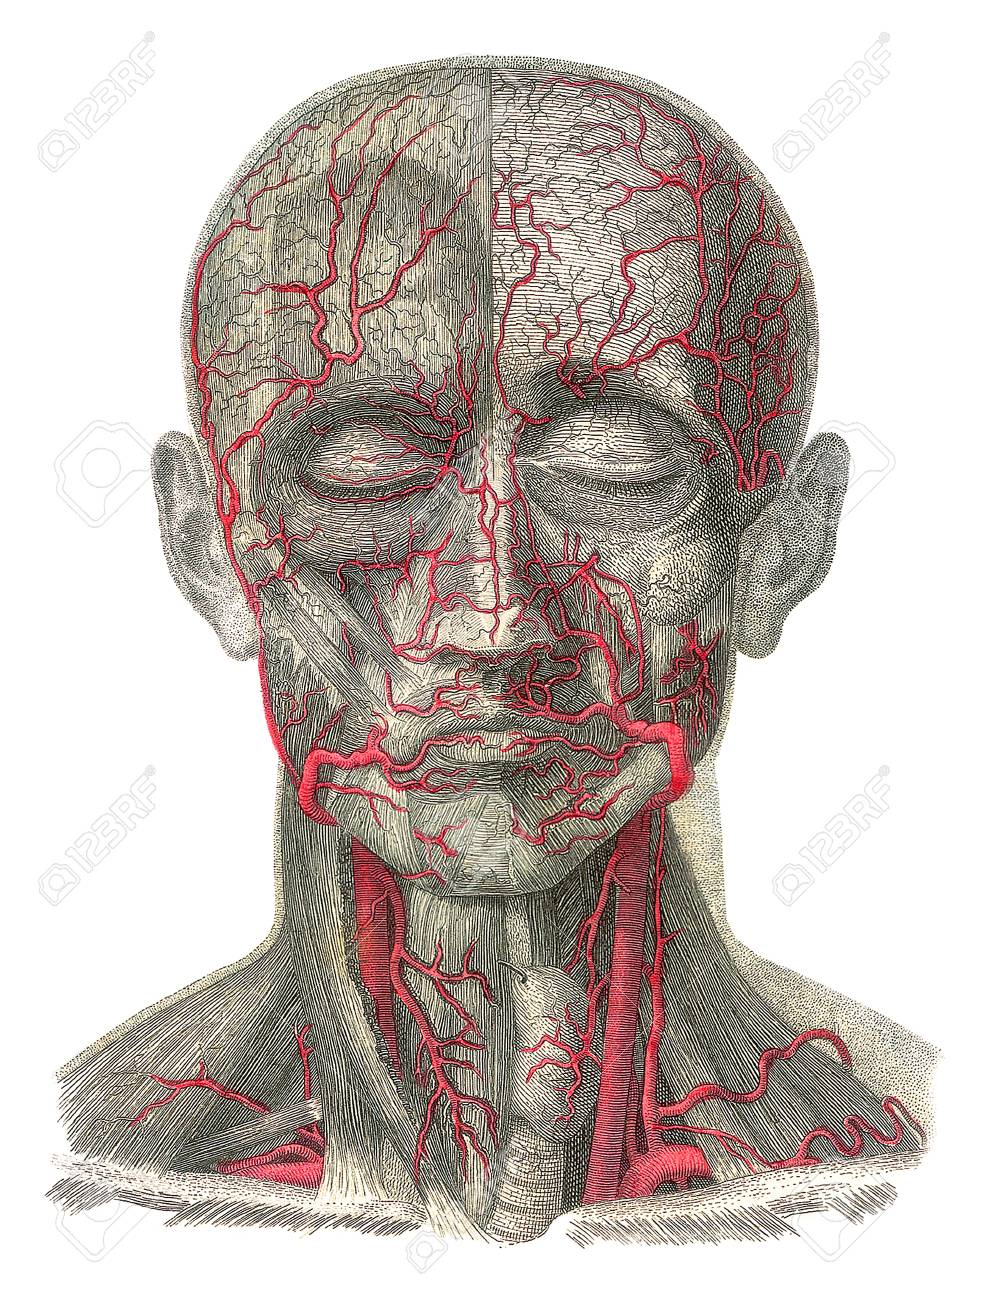 Blood Vessels Of The Headartwork Stock Photo Picture And Royalty